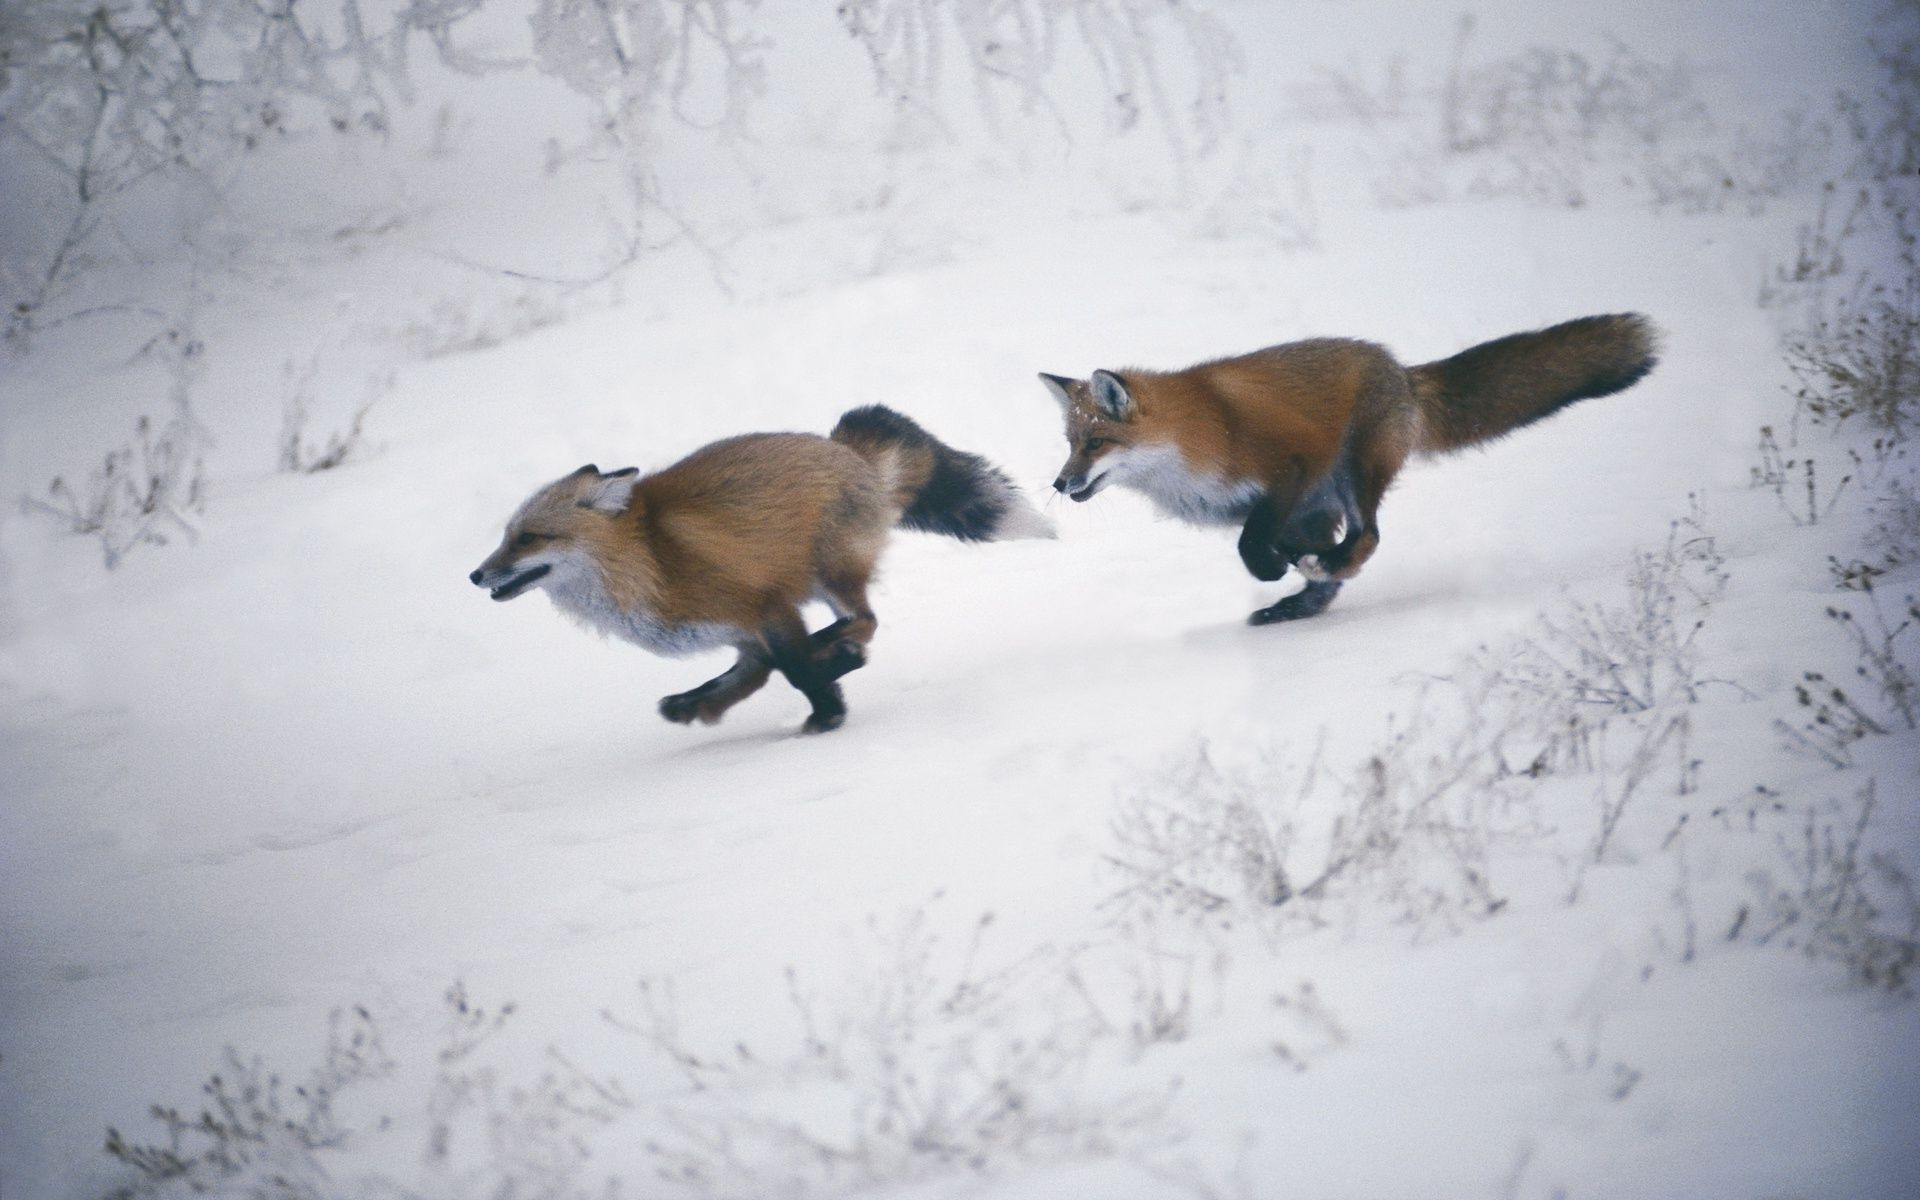 foxes playing catch-up